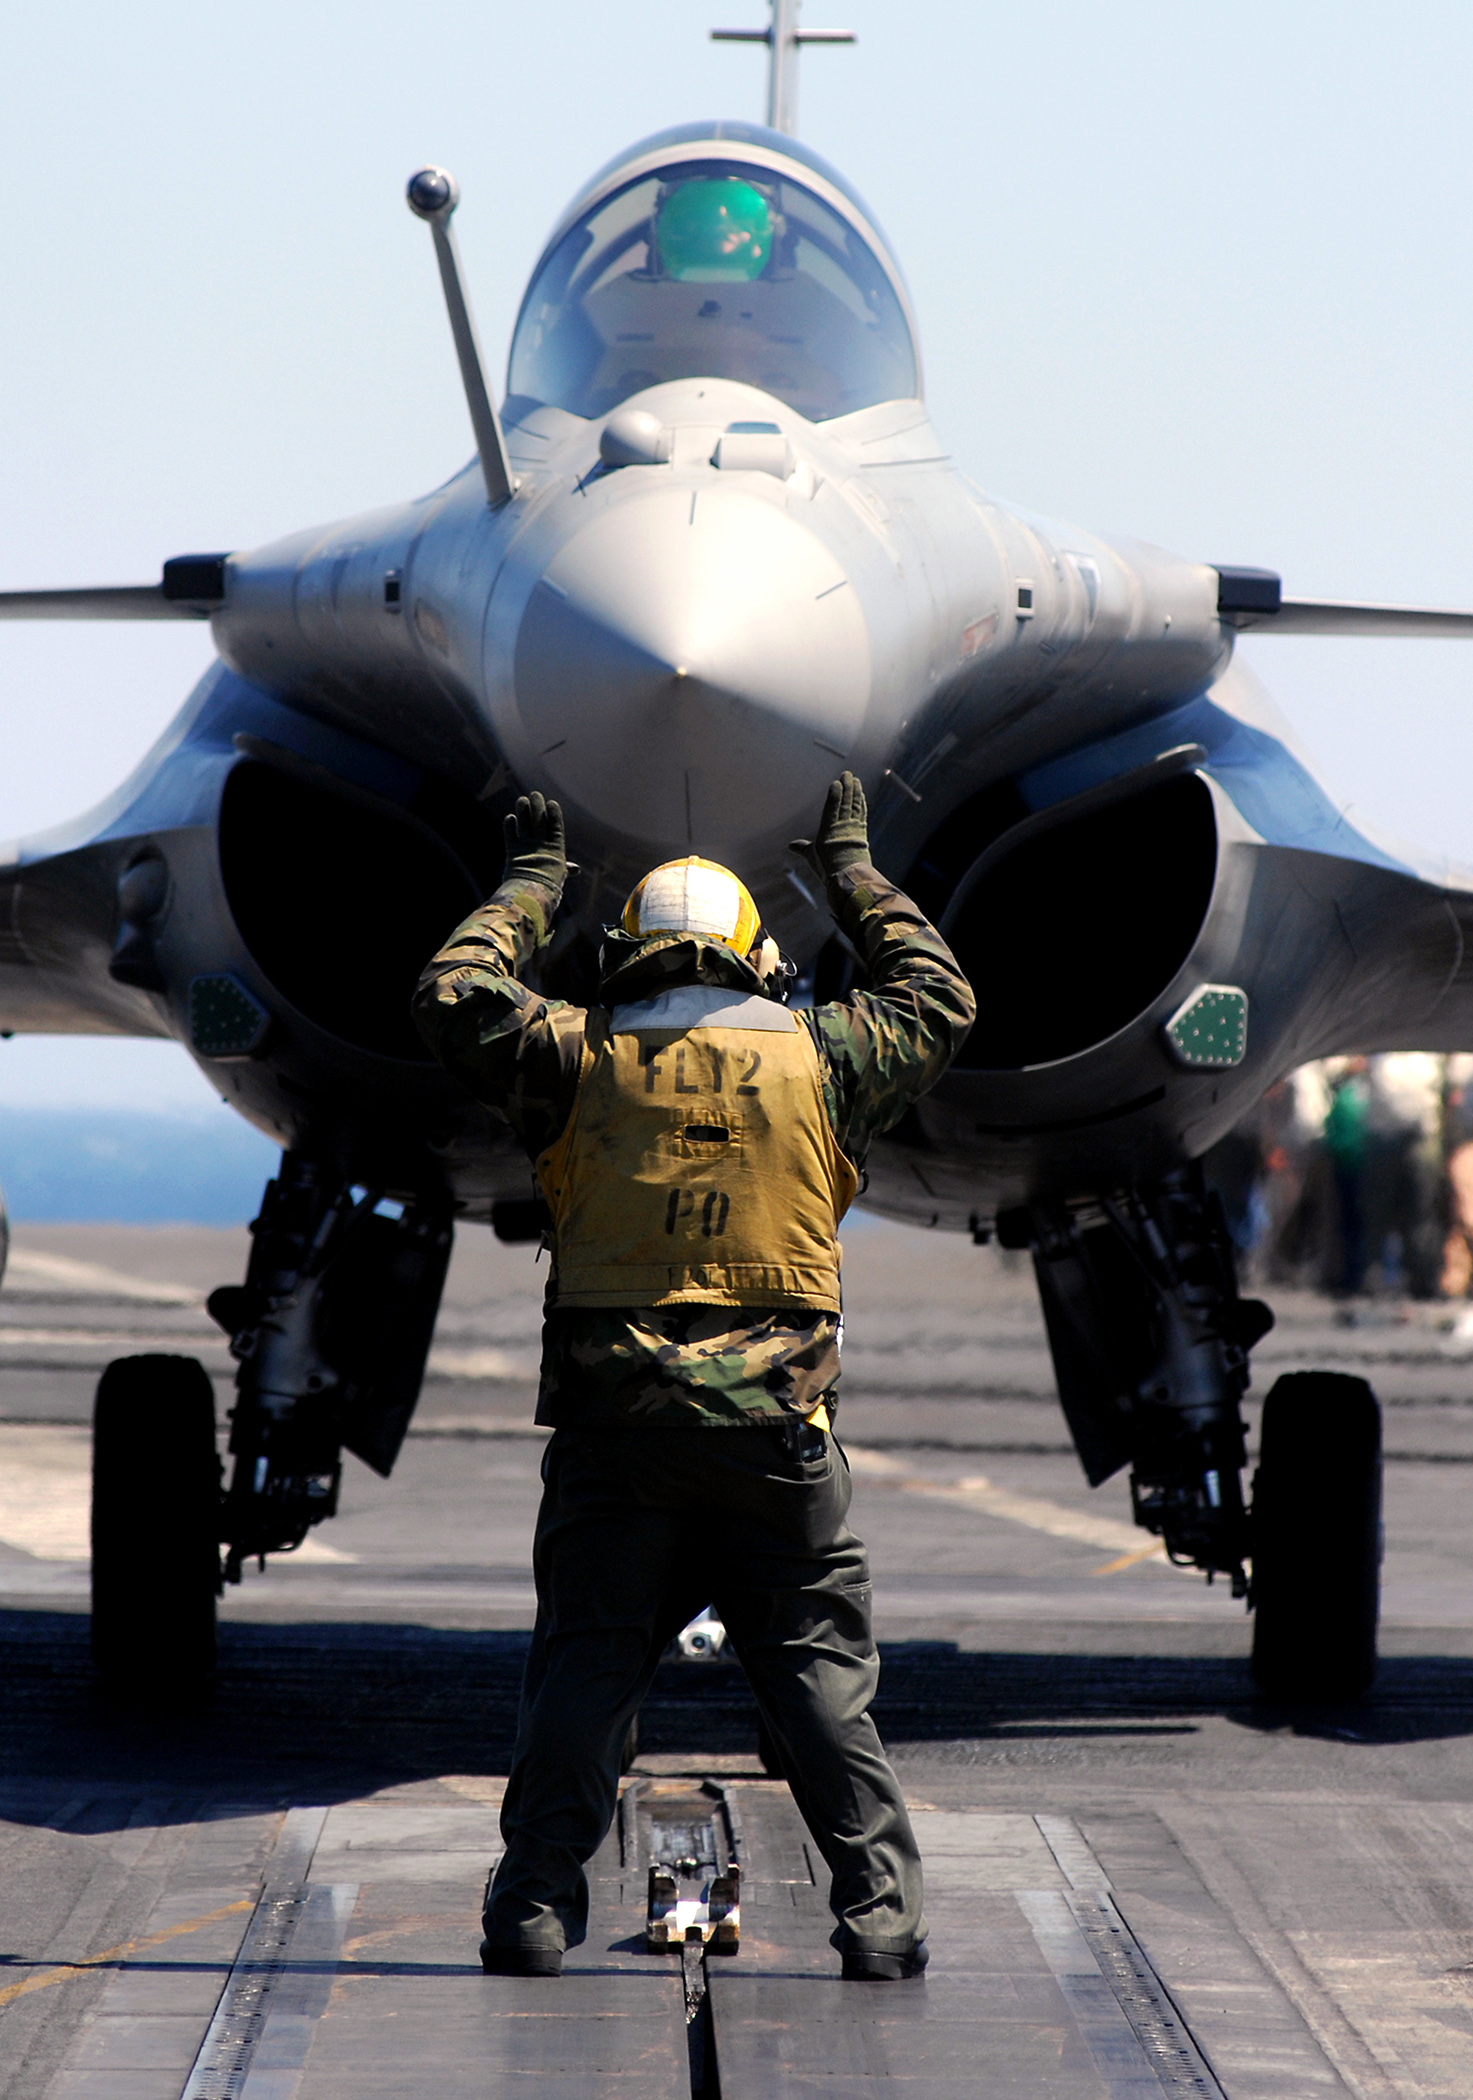 http://upload.wikimedia.org/wikipedia/commons/8/88/Rafale-080521-N-2984R-066.jpg